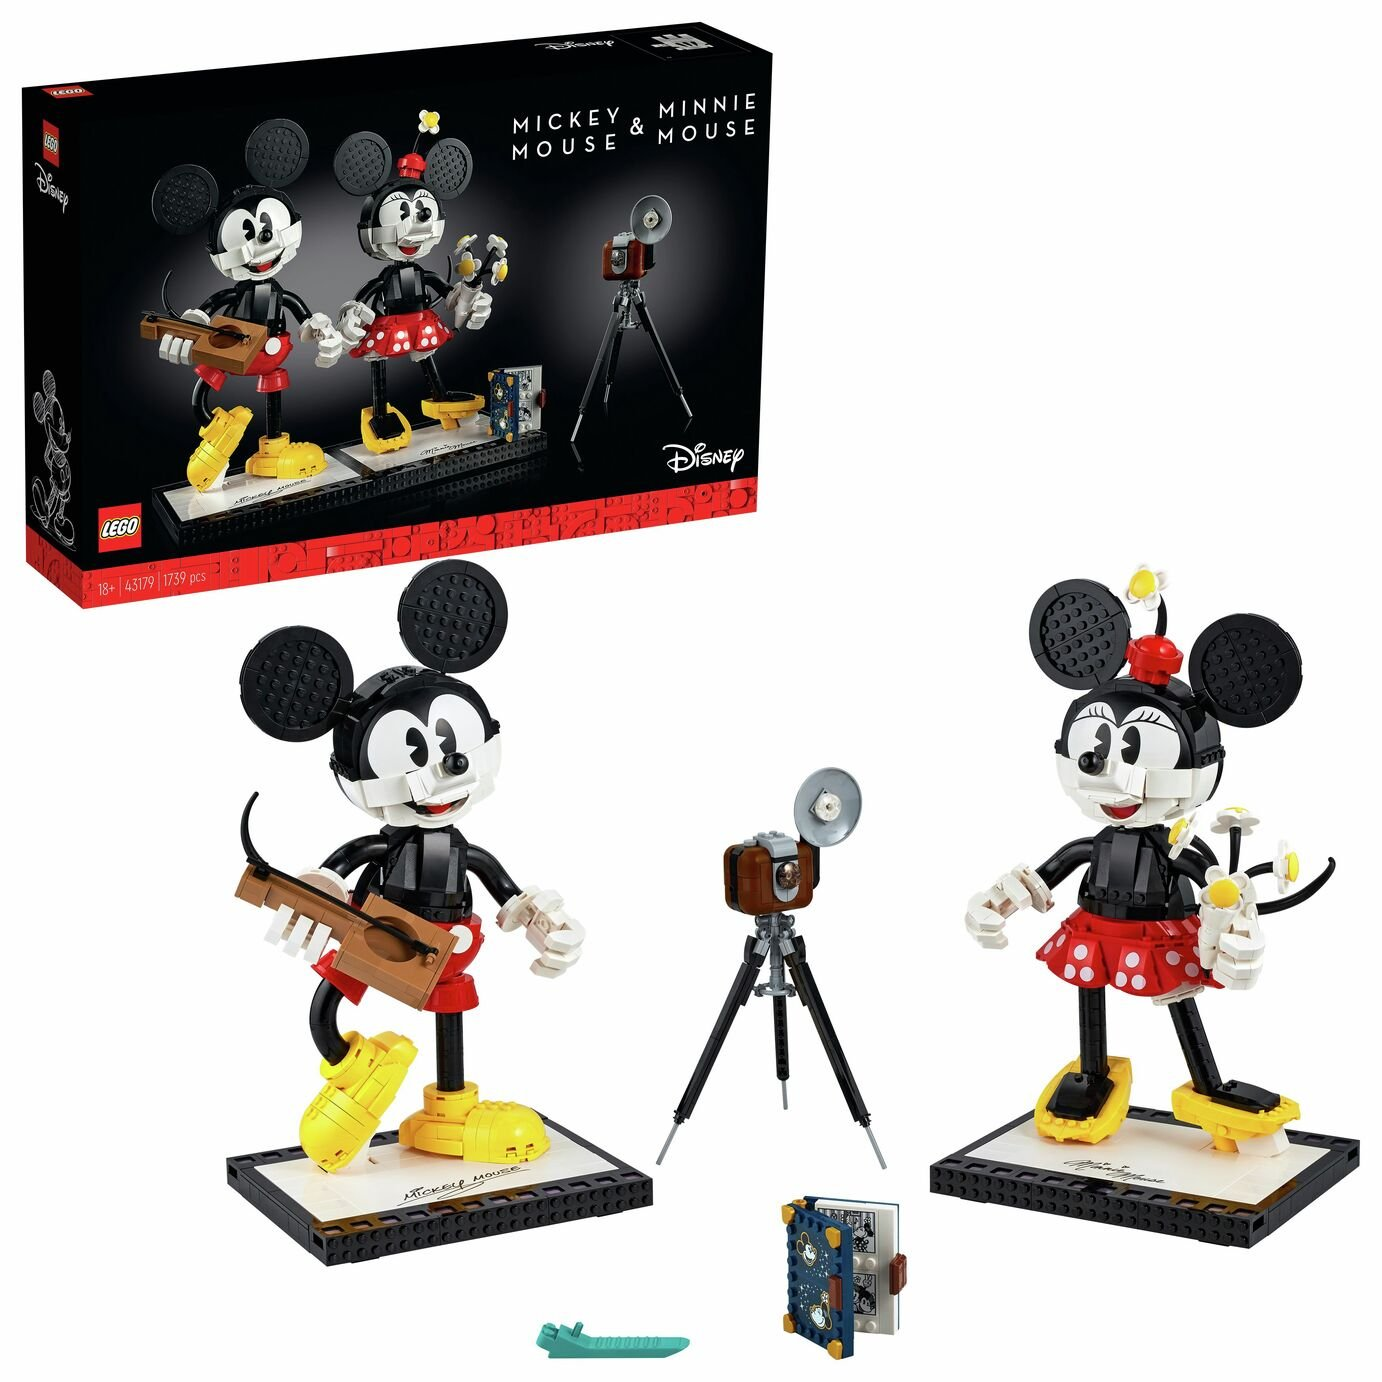 LEGO 43179 Disney Mickey Mouse & Minnie Mouse Buildable Characters